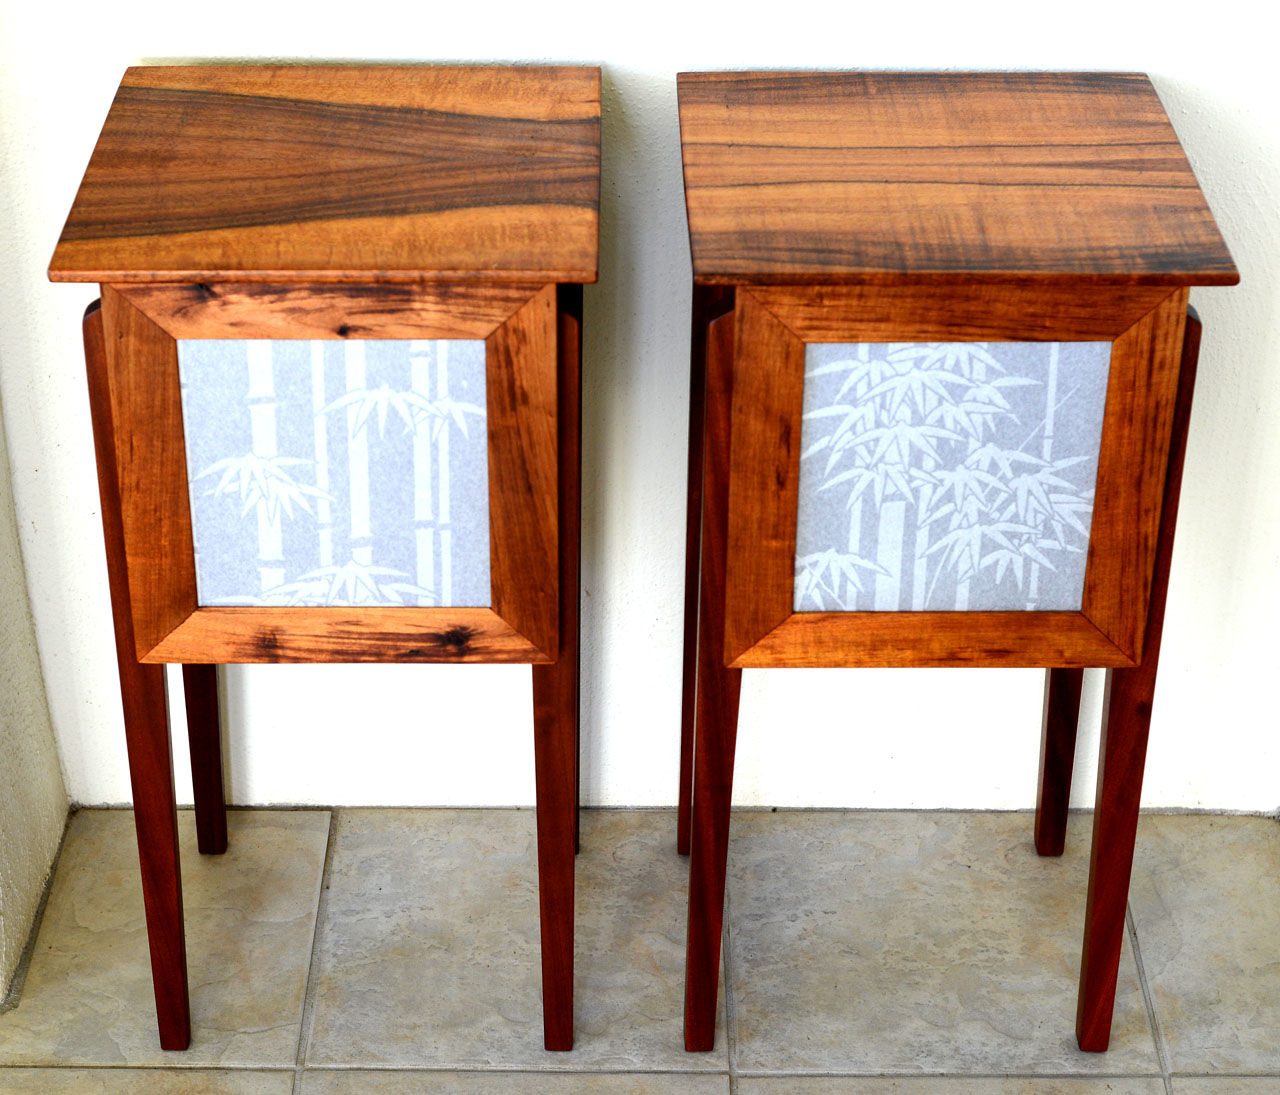 Bamboo Shoji Bedside Tables by Gary Forest